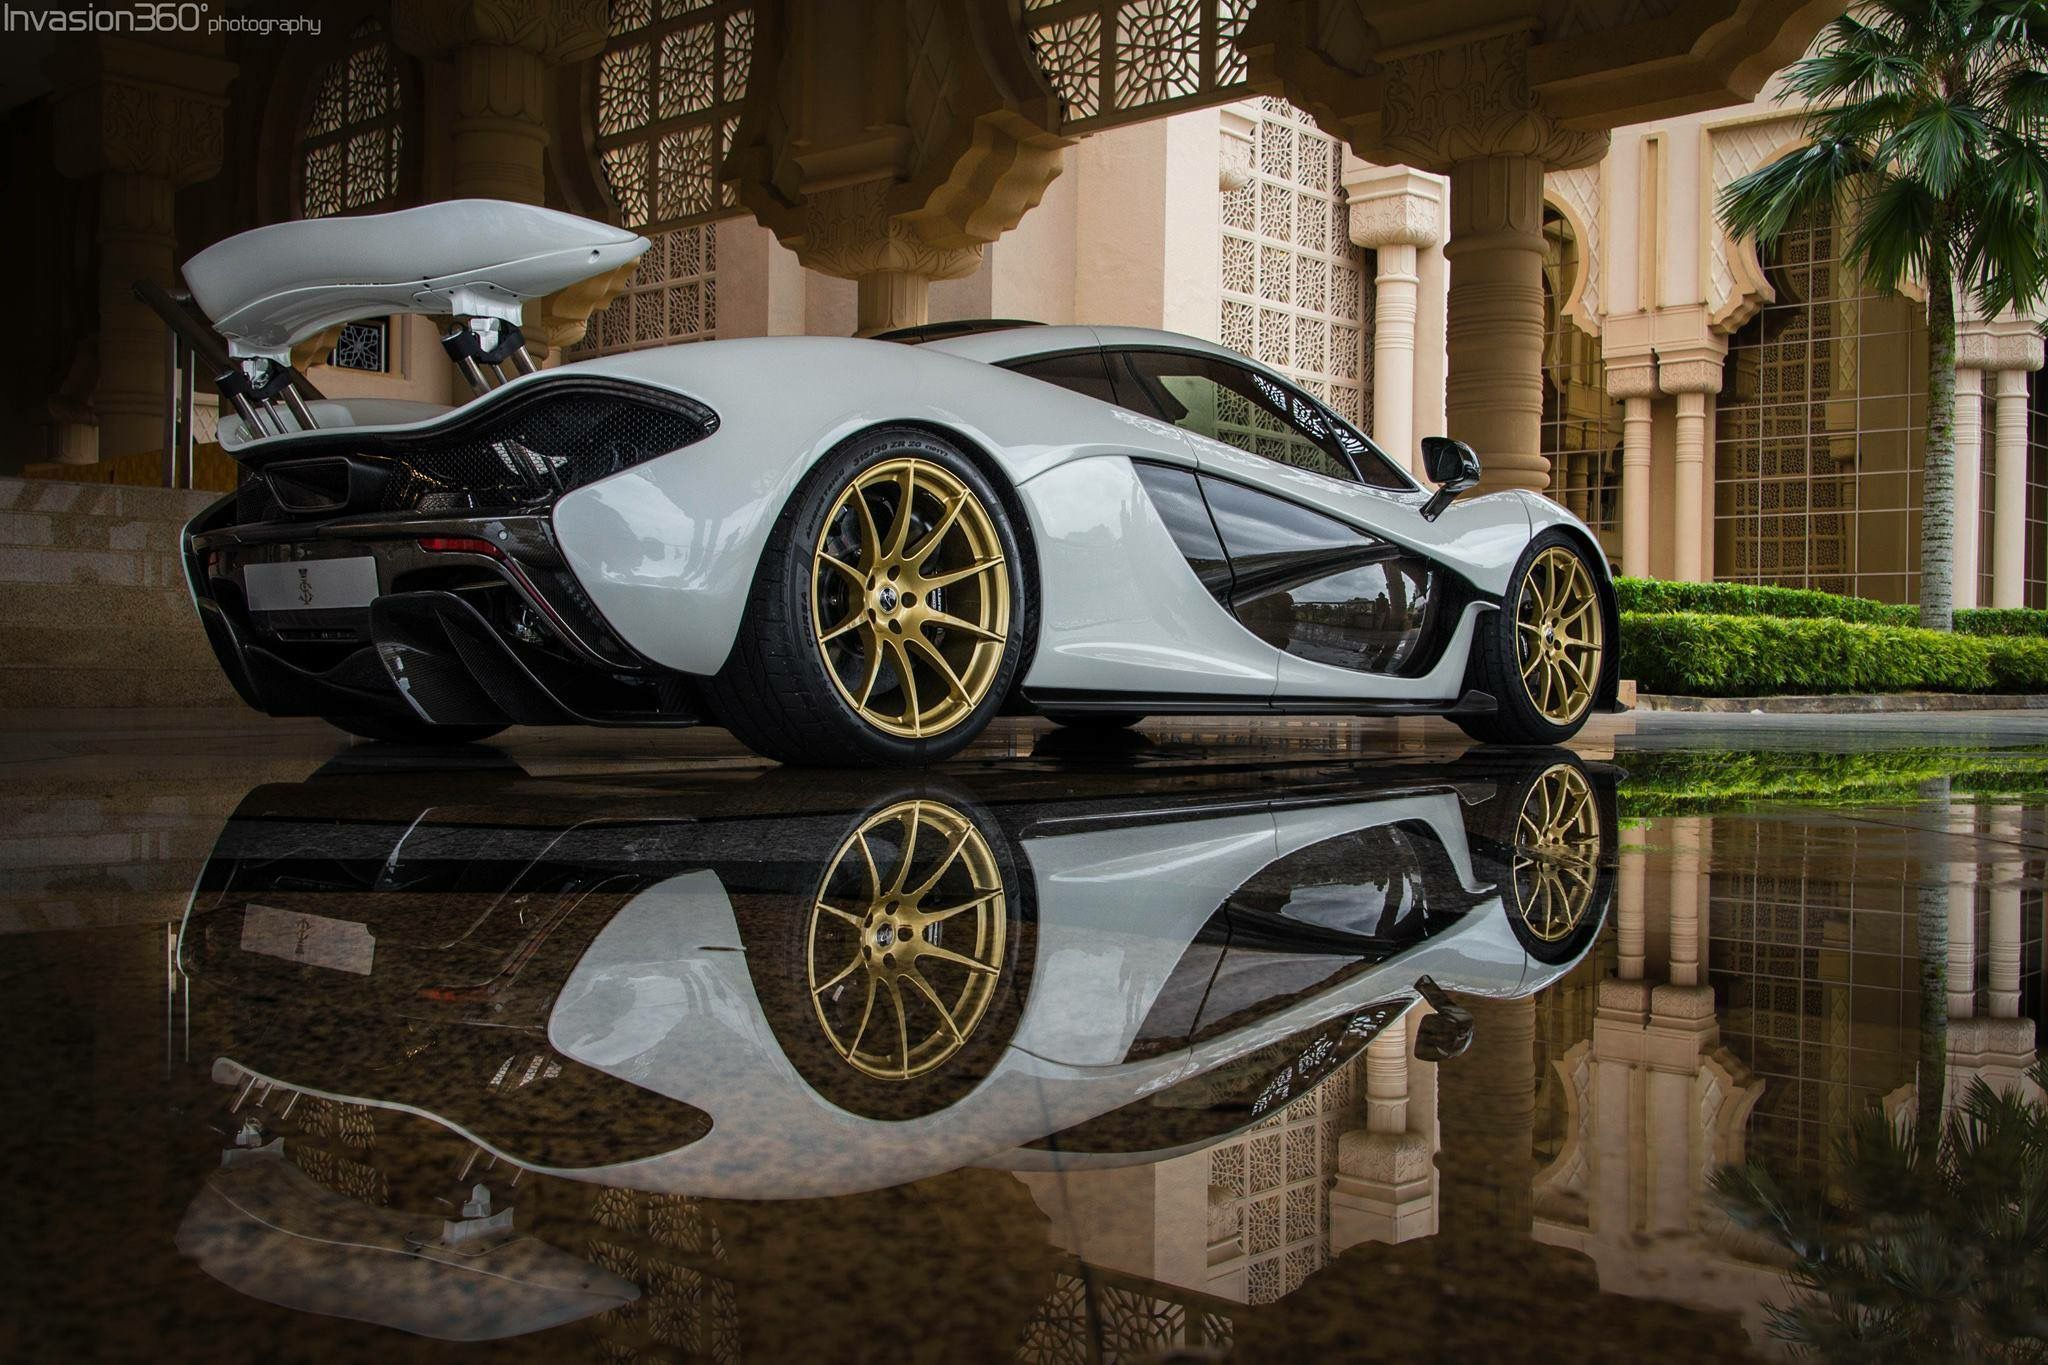 Superbe Cars · That Reflection! #McLaren P1 Via Invasion360 Photography